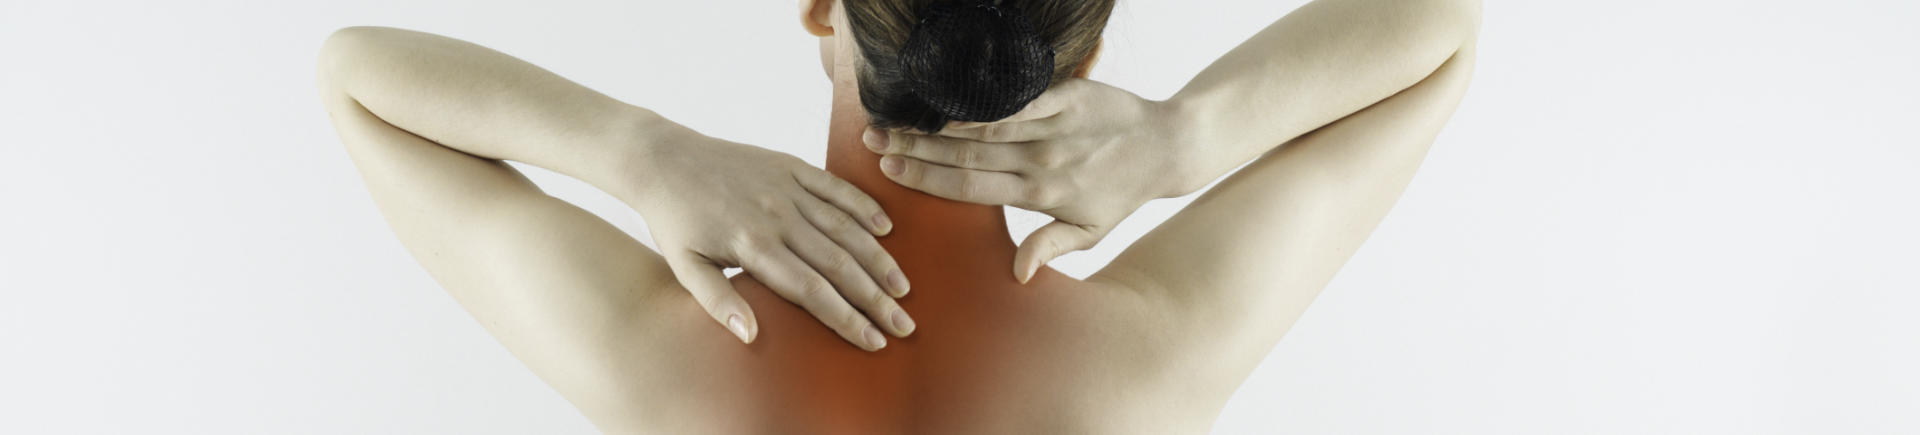 woman with upper back pain